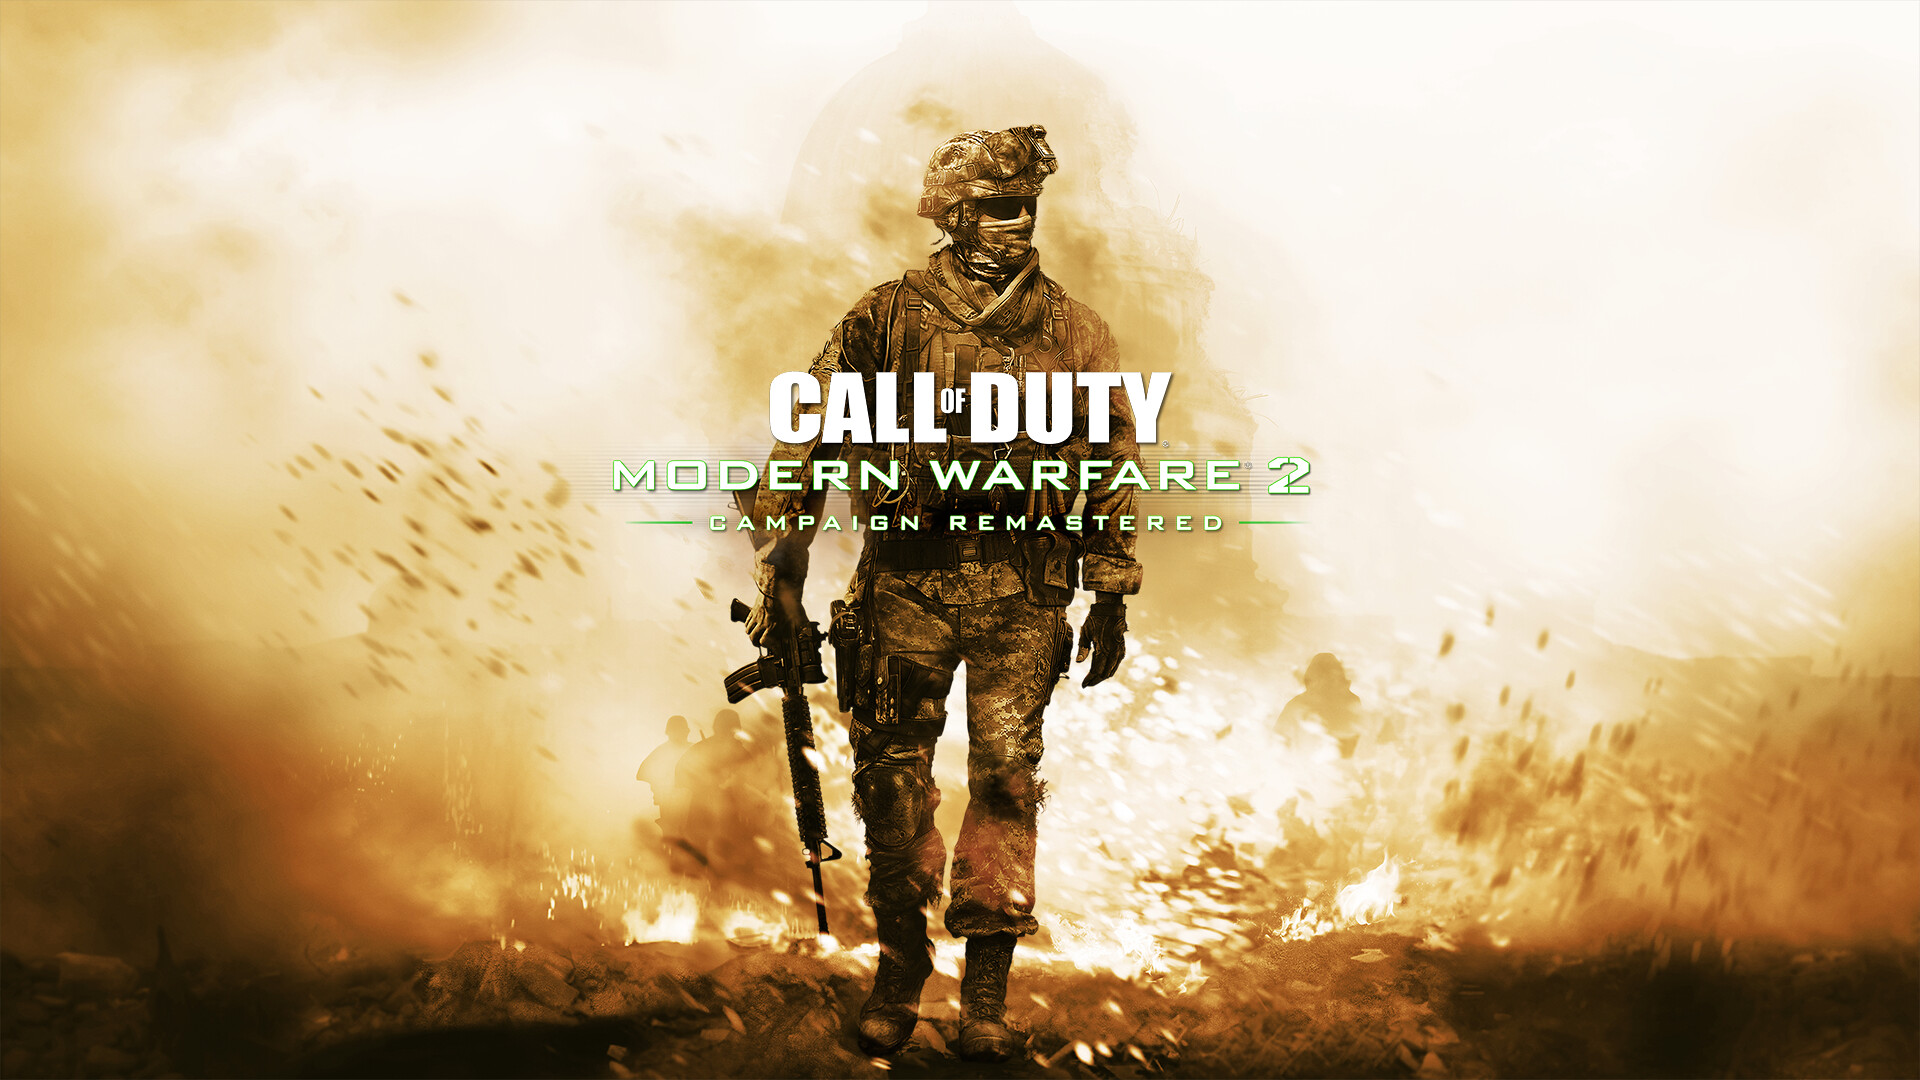 Call of Duty Modern Warfare 2 Campaing Remastered